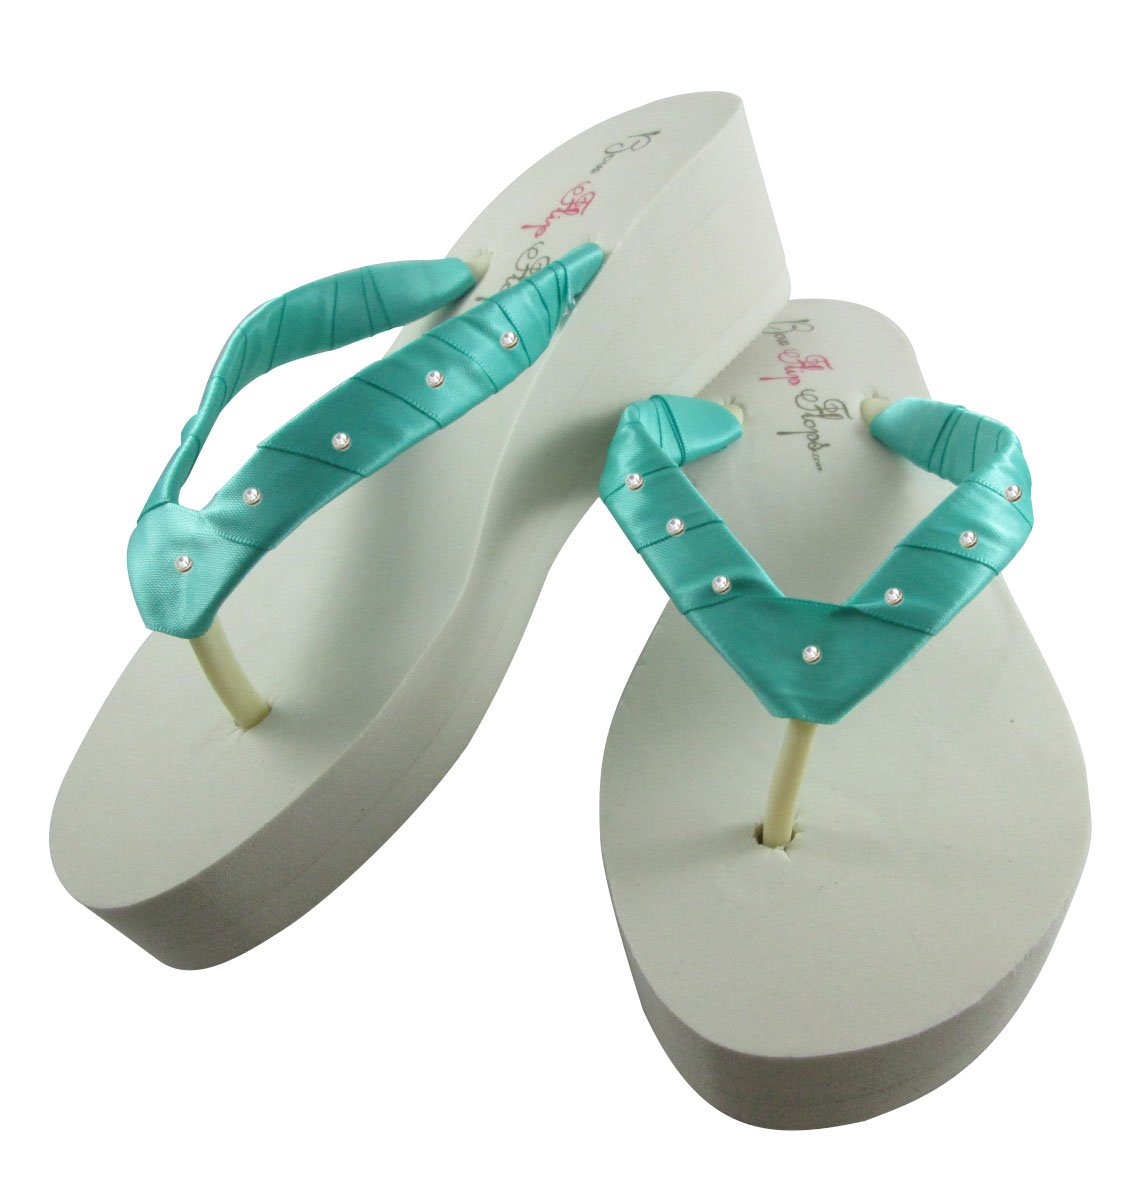 cc4a6d1605e0a Amazon.com  Teal   Tropic Green Swarovski Rhinestone Accent Wedge Flip Flops  in Ivory or White